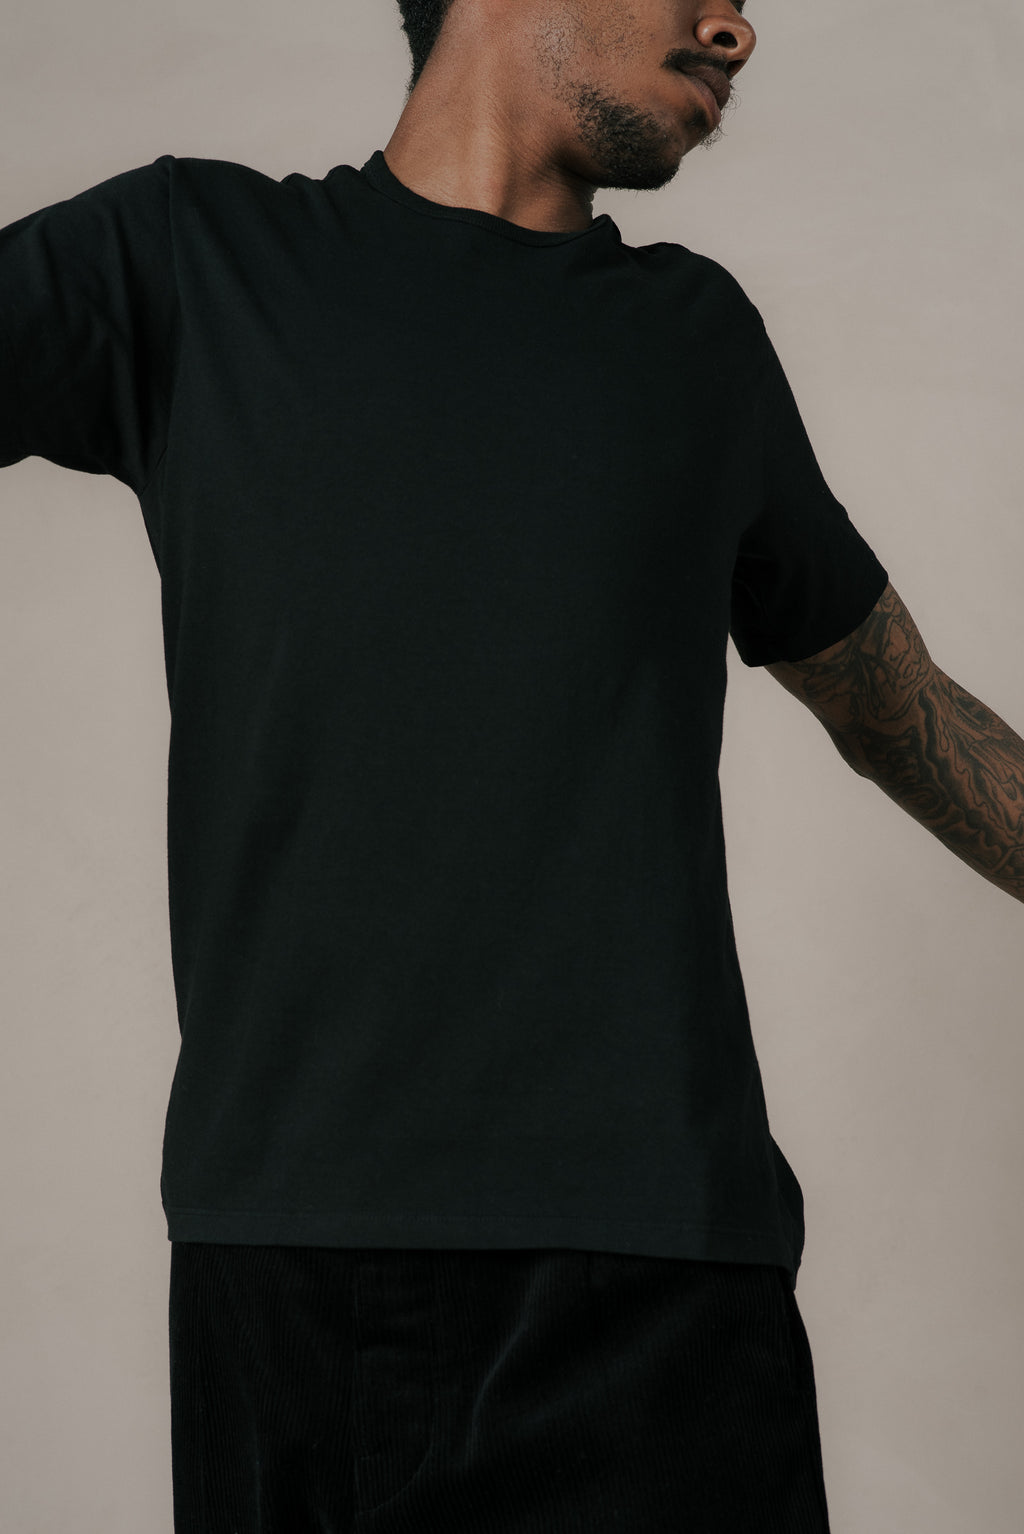 TEE 2-PACK IN BLACK